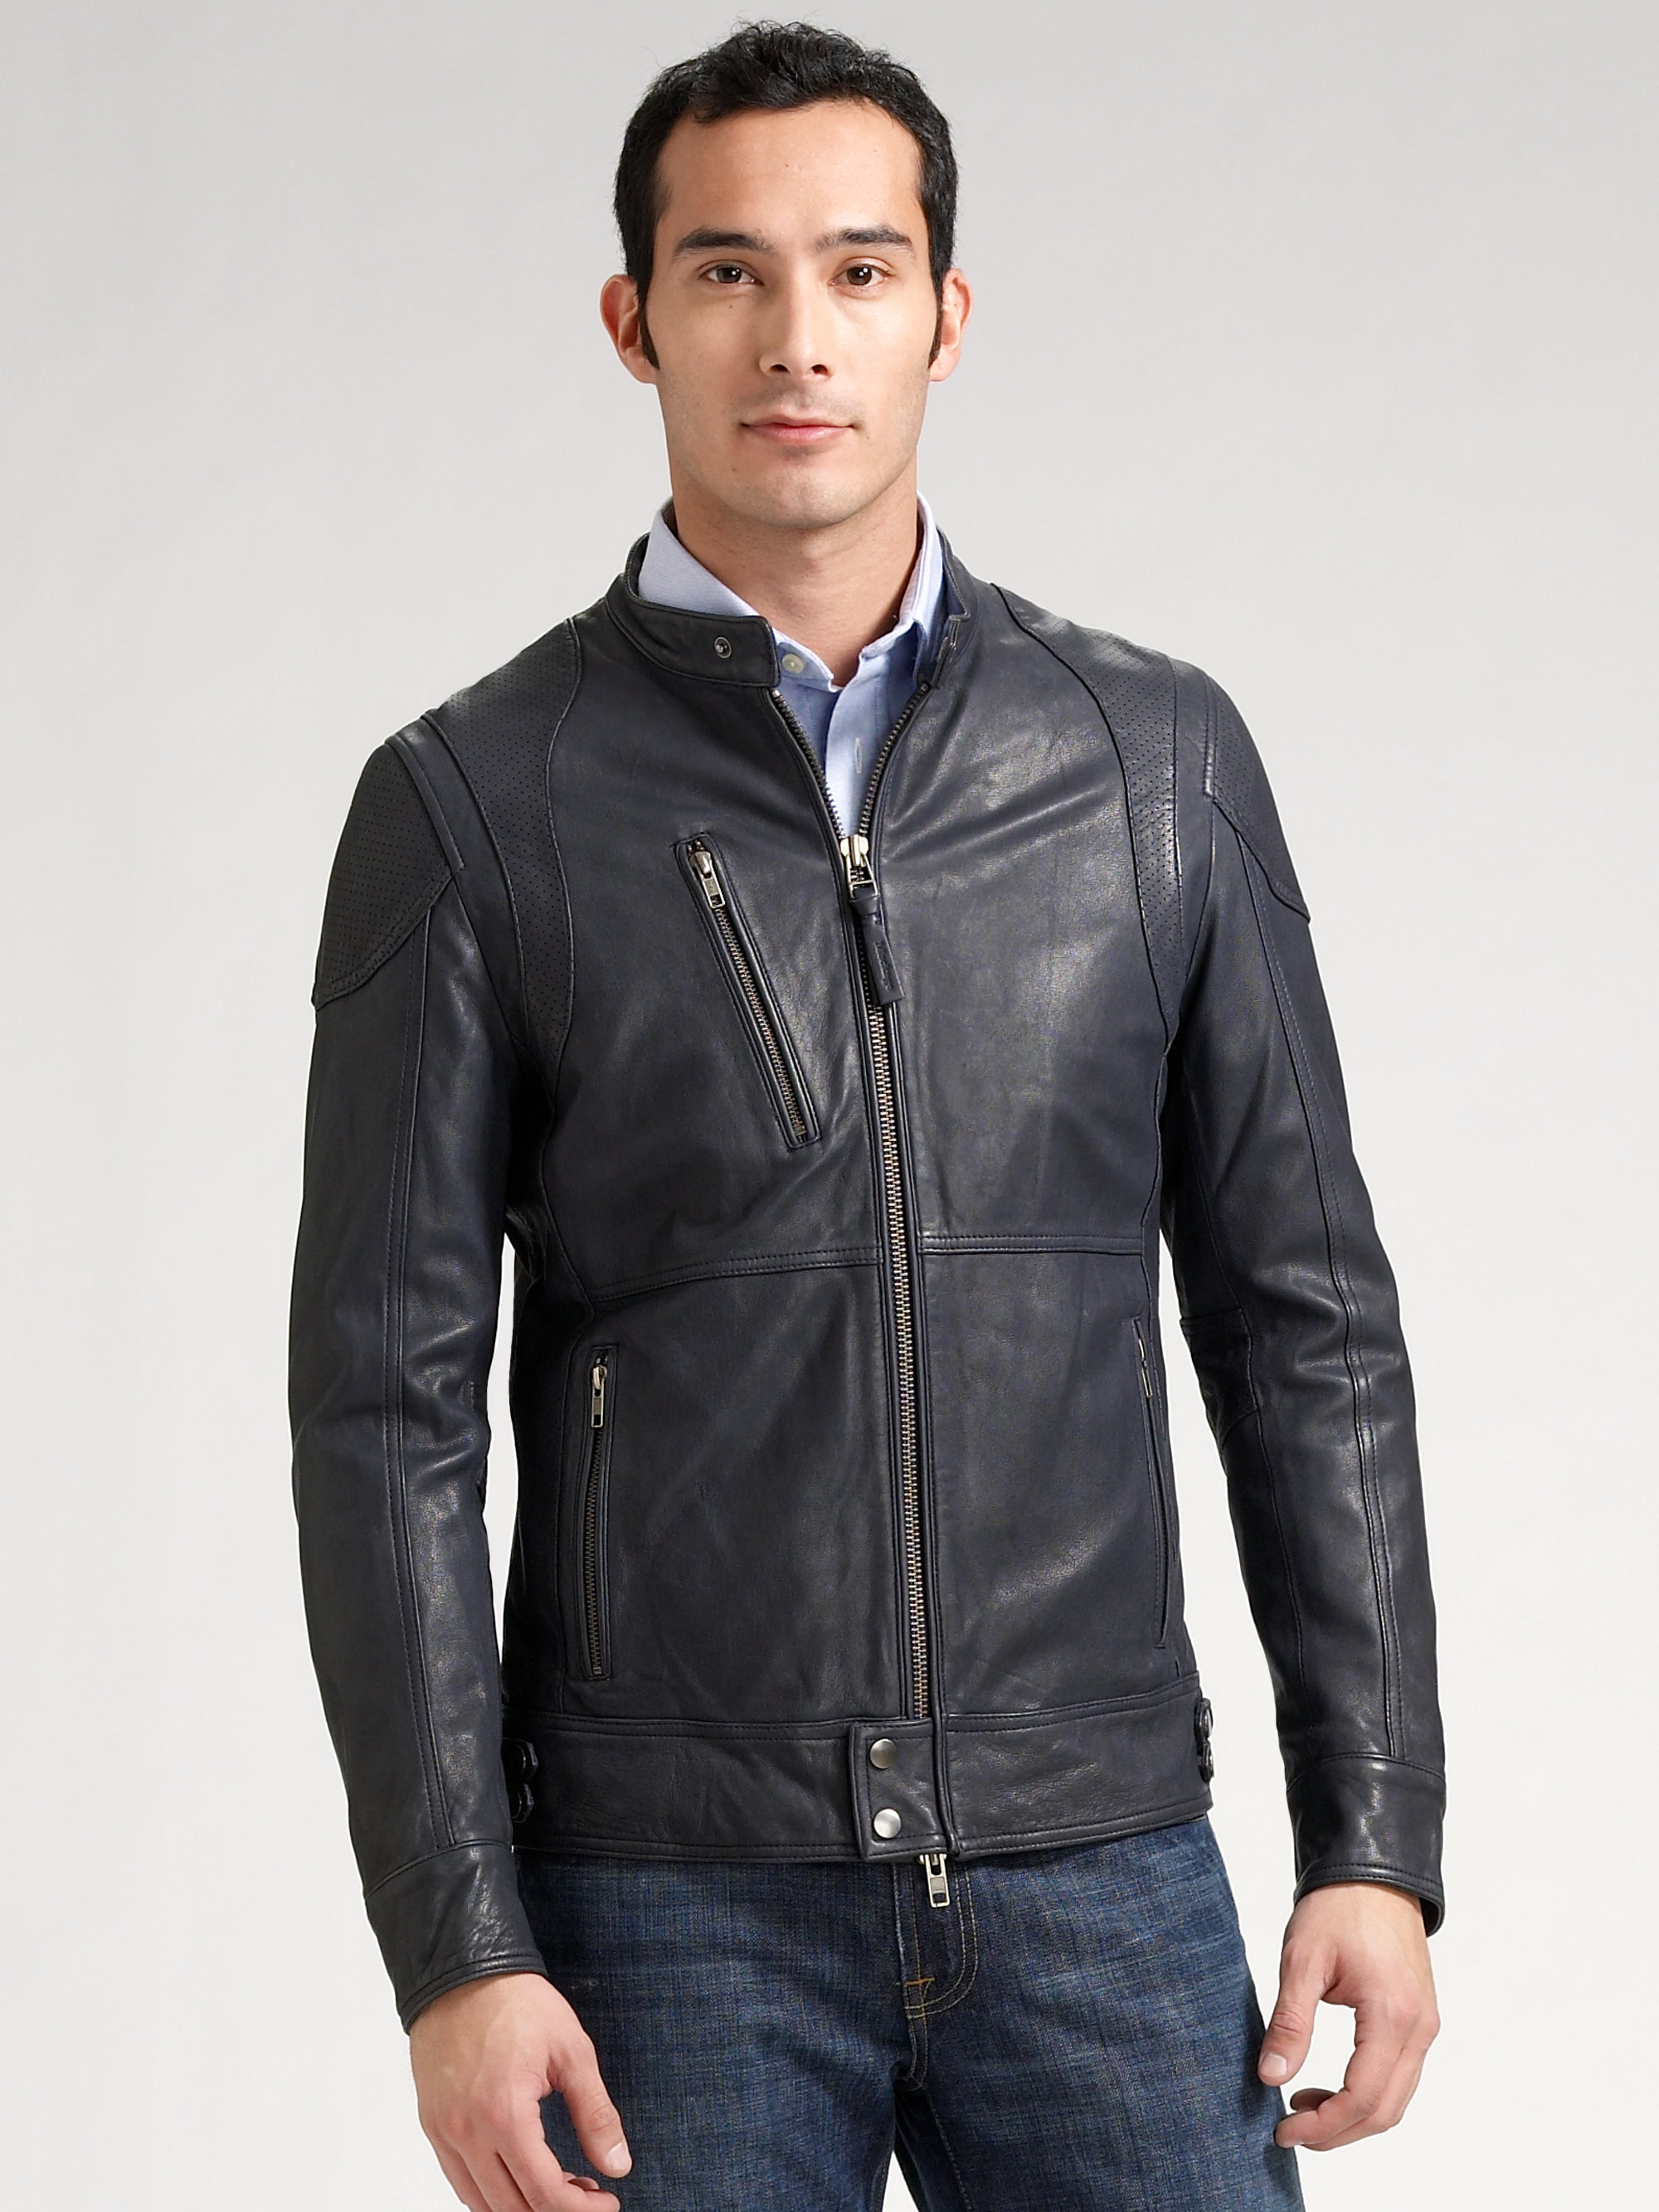 Mackage Perforated Leather Jacket in Black for Men | Lyst